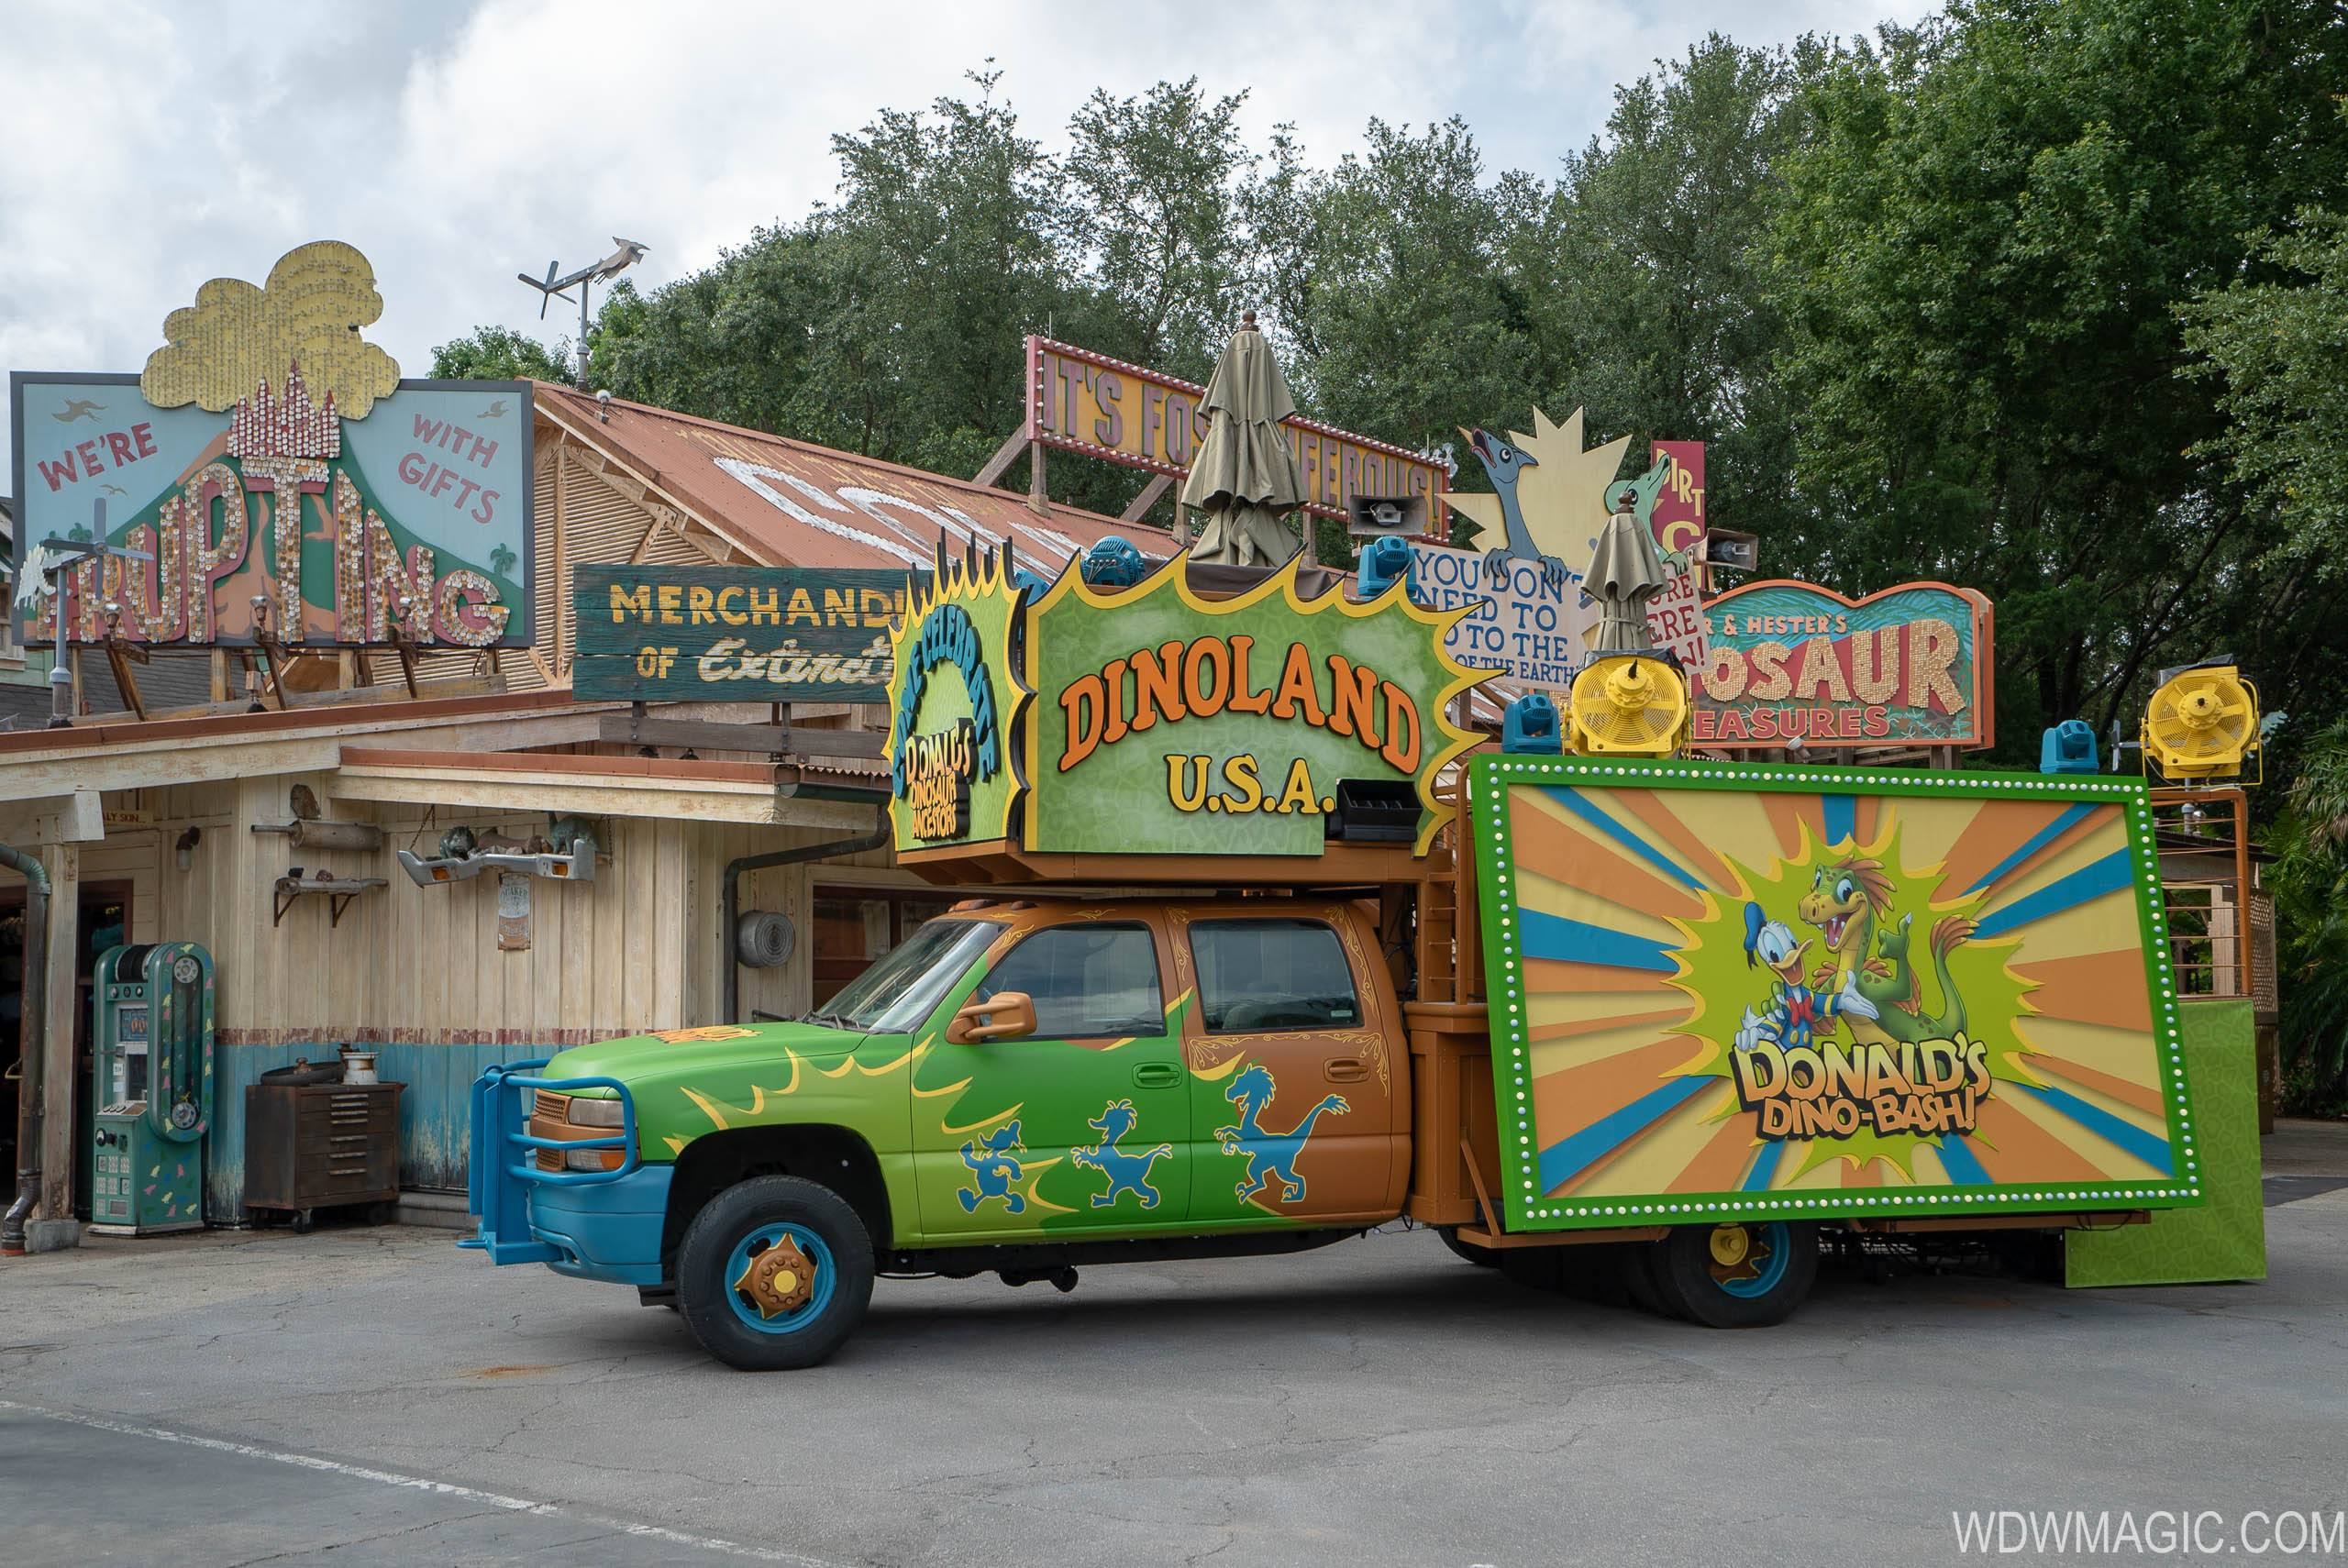 Donald's Dino-Bash overview